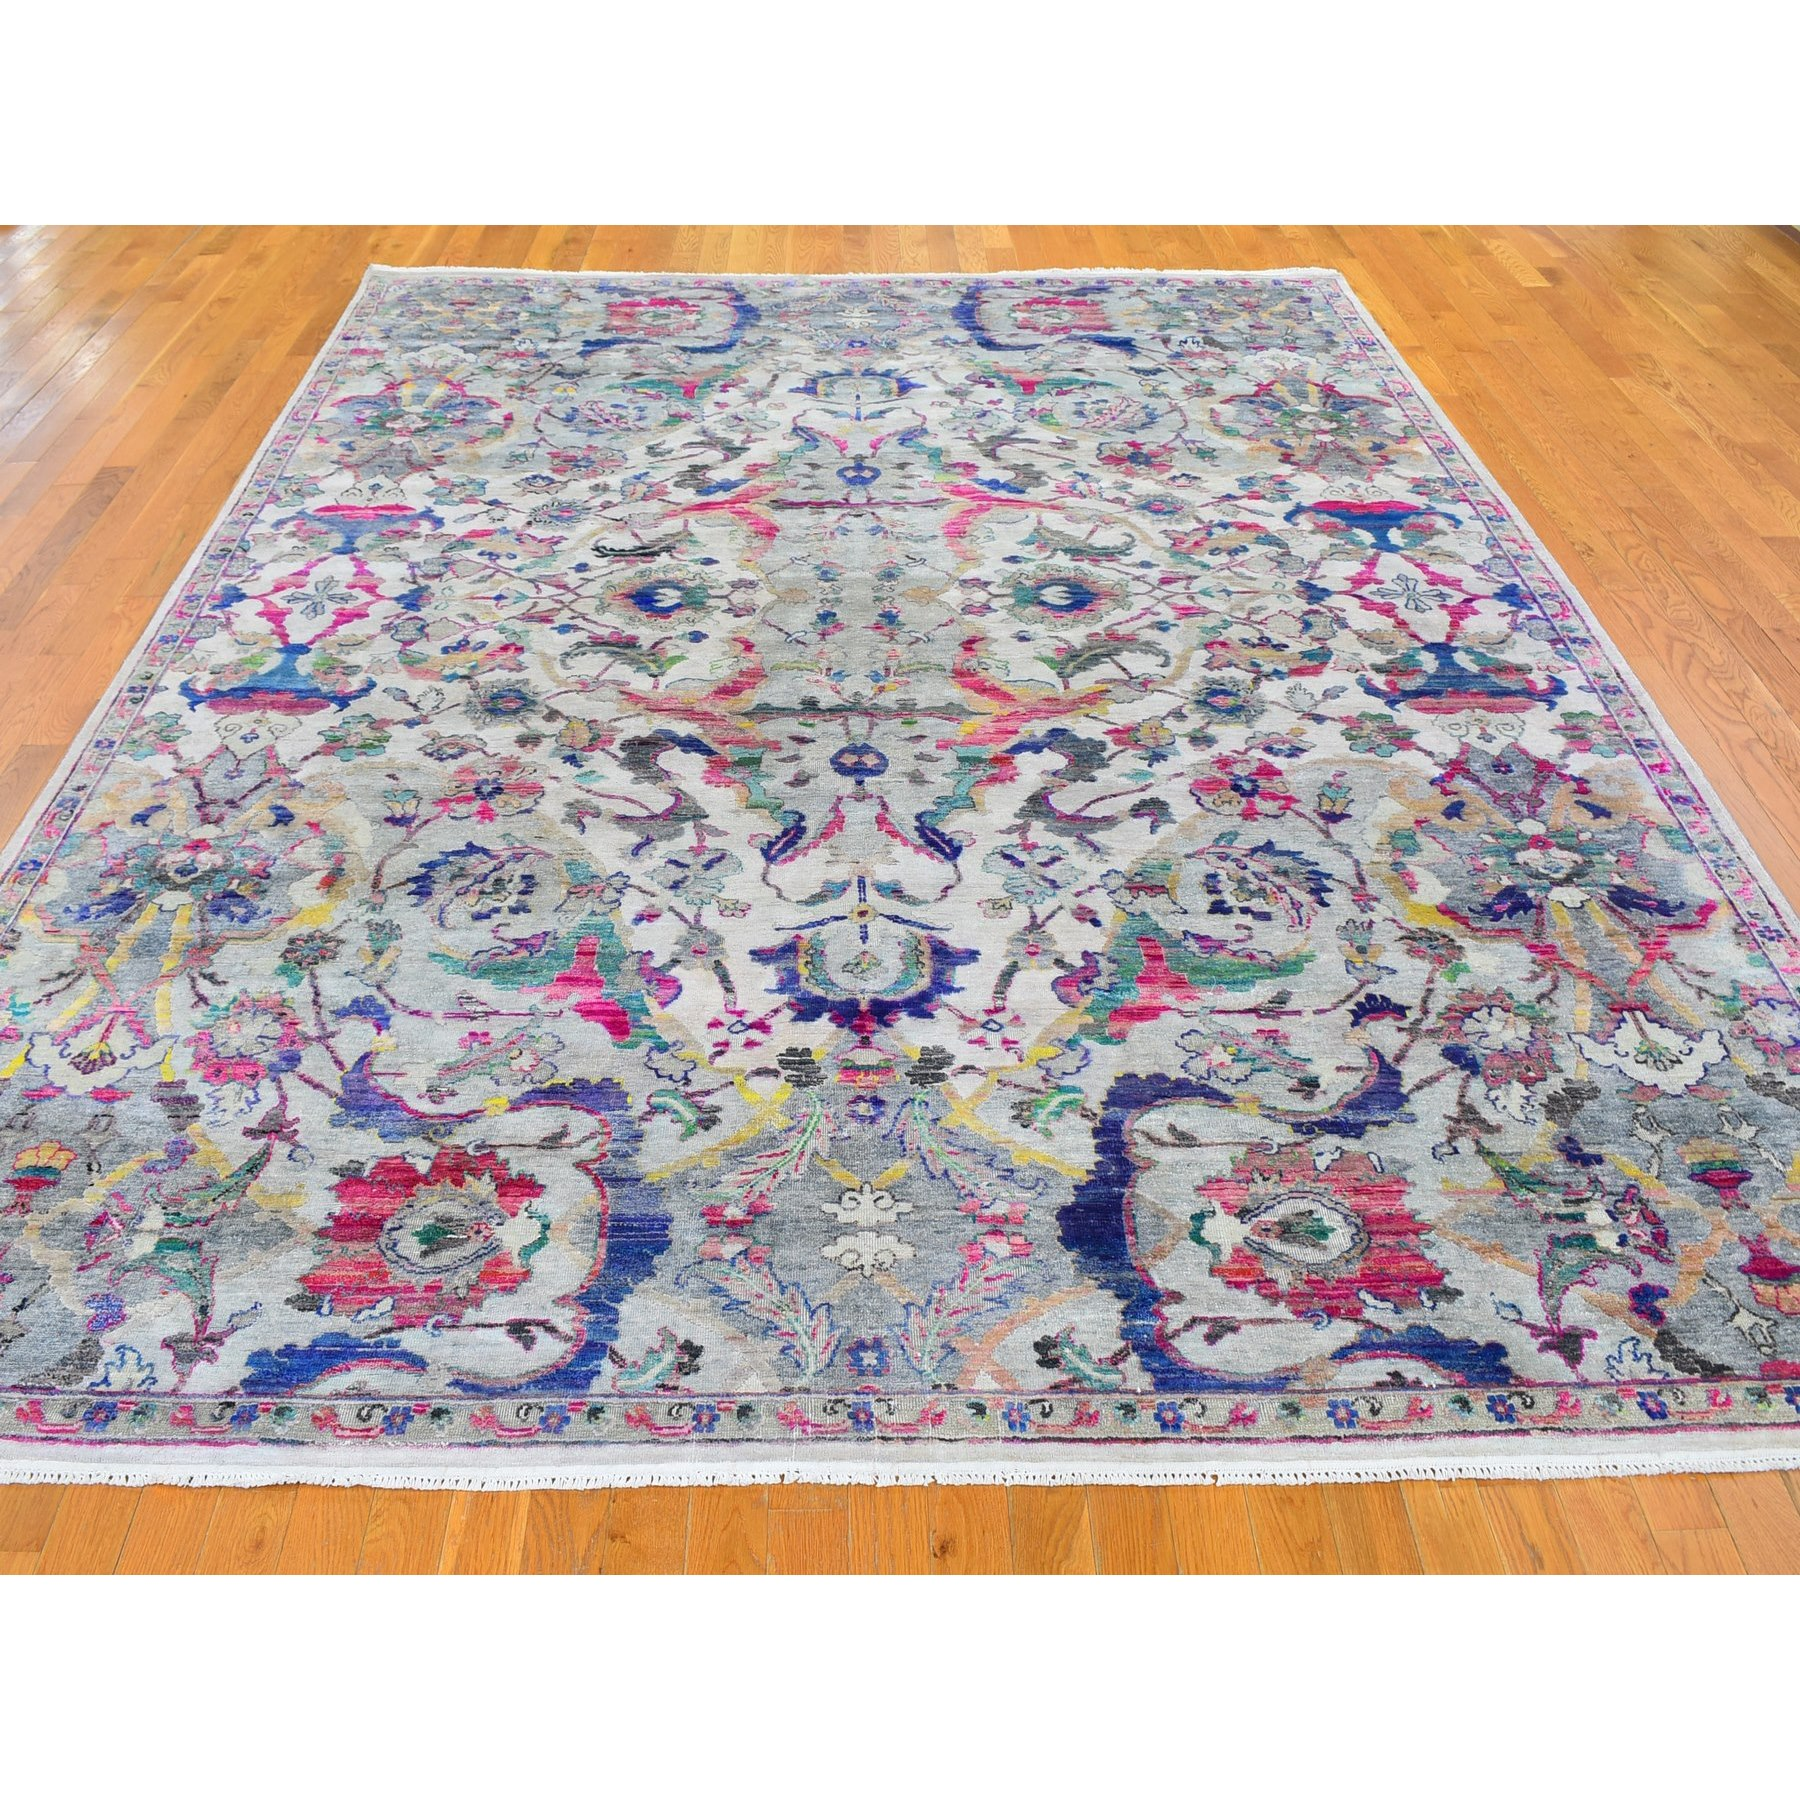 "9'x12'1"" Ivory All Over Design Pop of Color Sari Silk and Textured Wool Hand Knotted Oriental Rug"